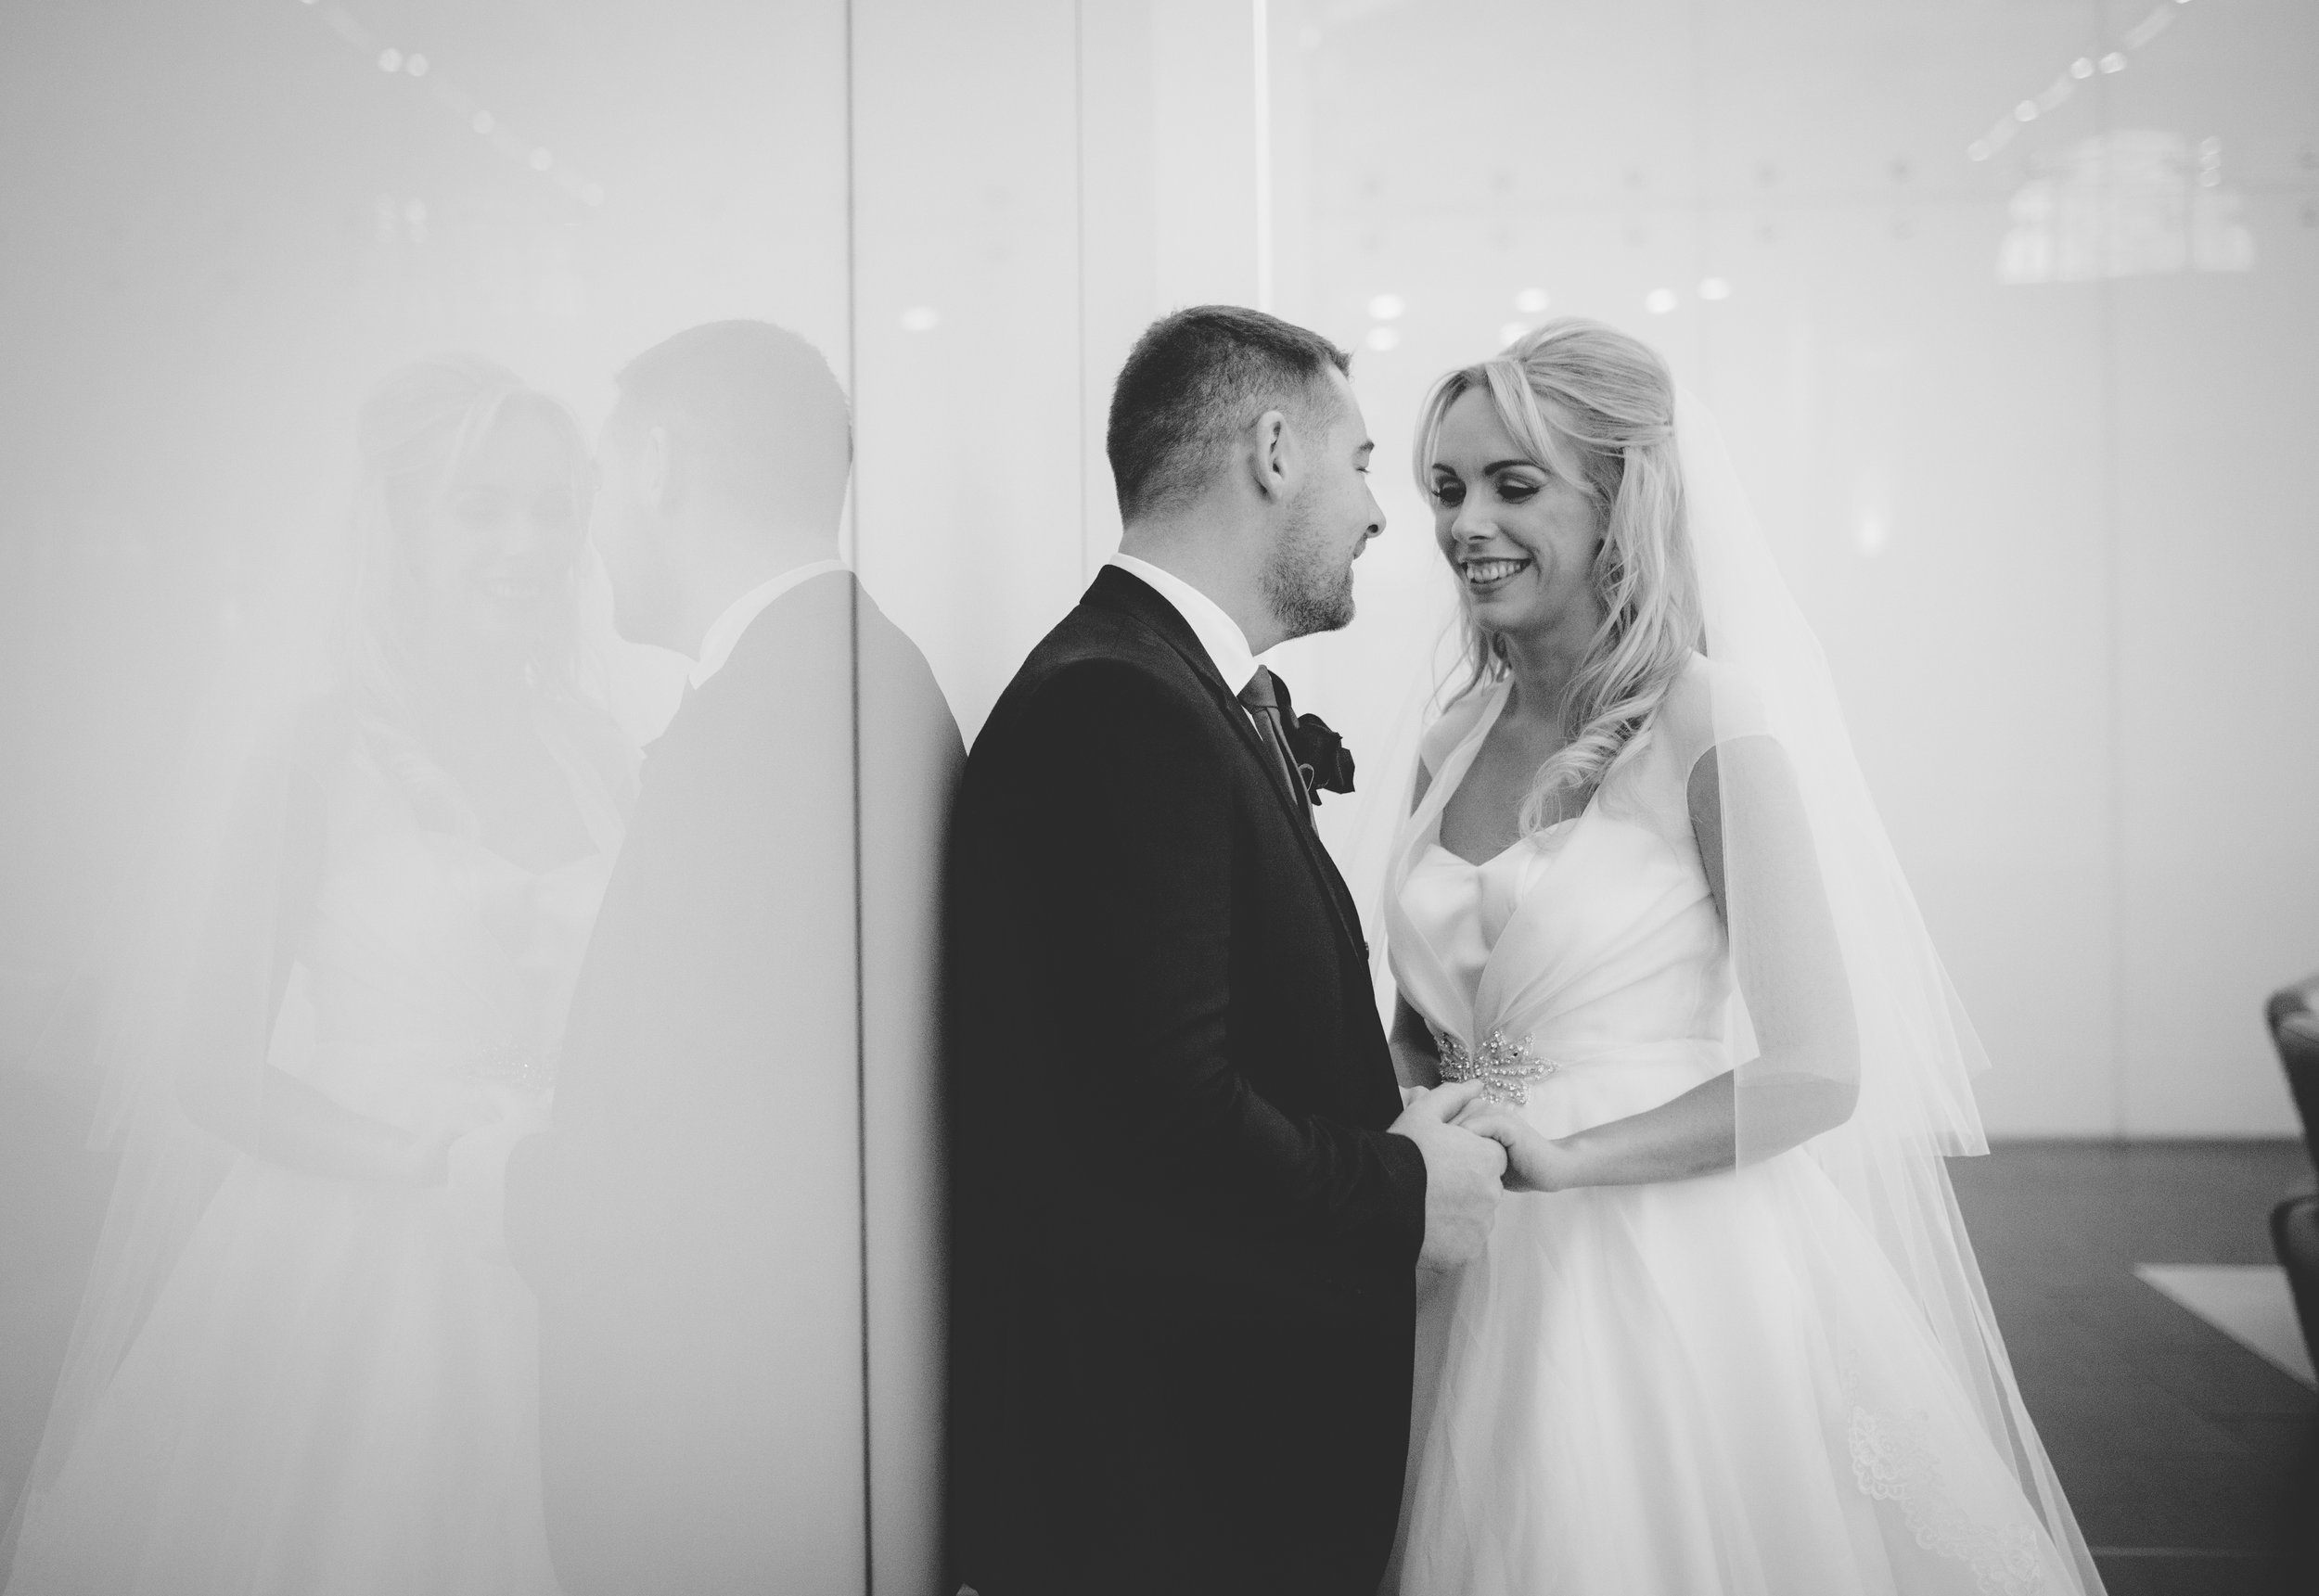 The Bride And Groom Looking Into One Another Eyes Inside Of Liver Building North